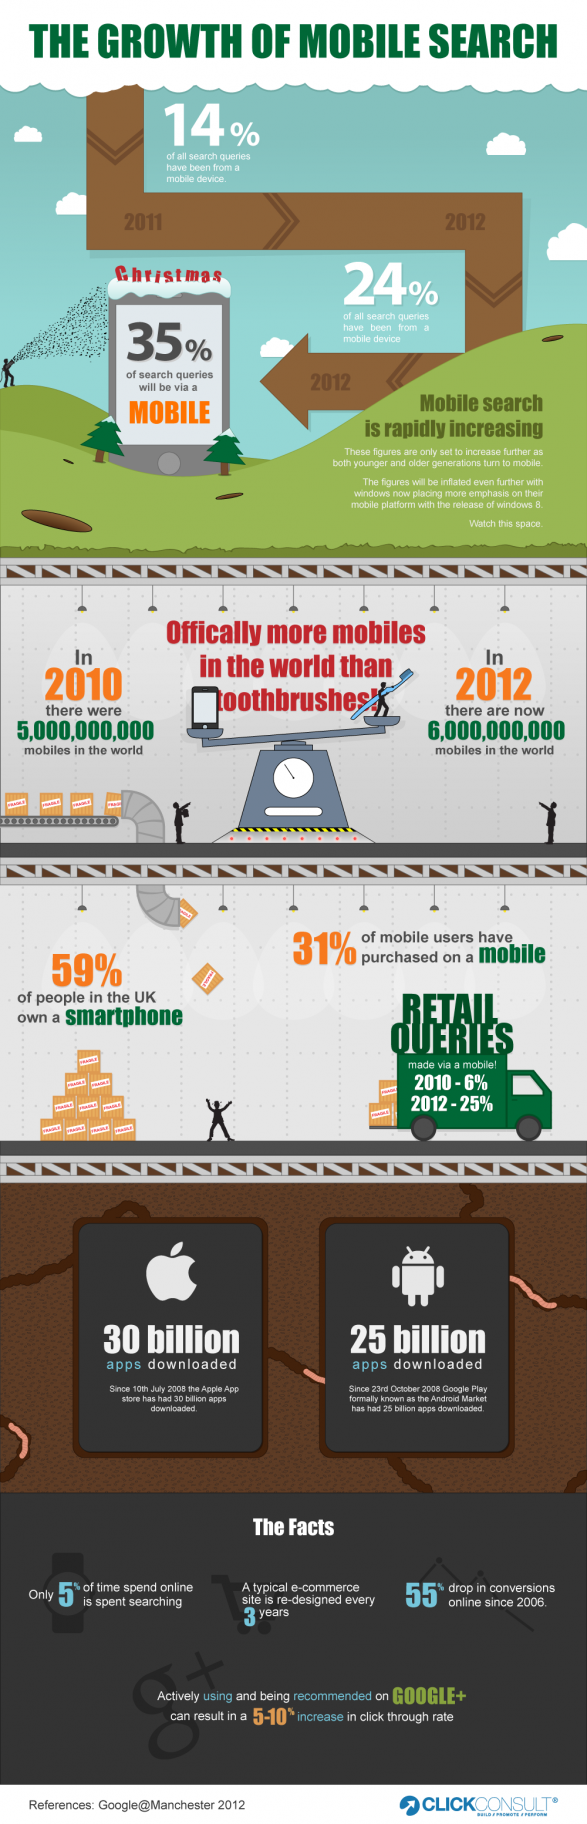 The Growth of Mobile Search